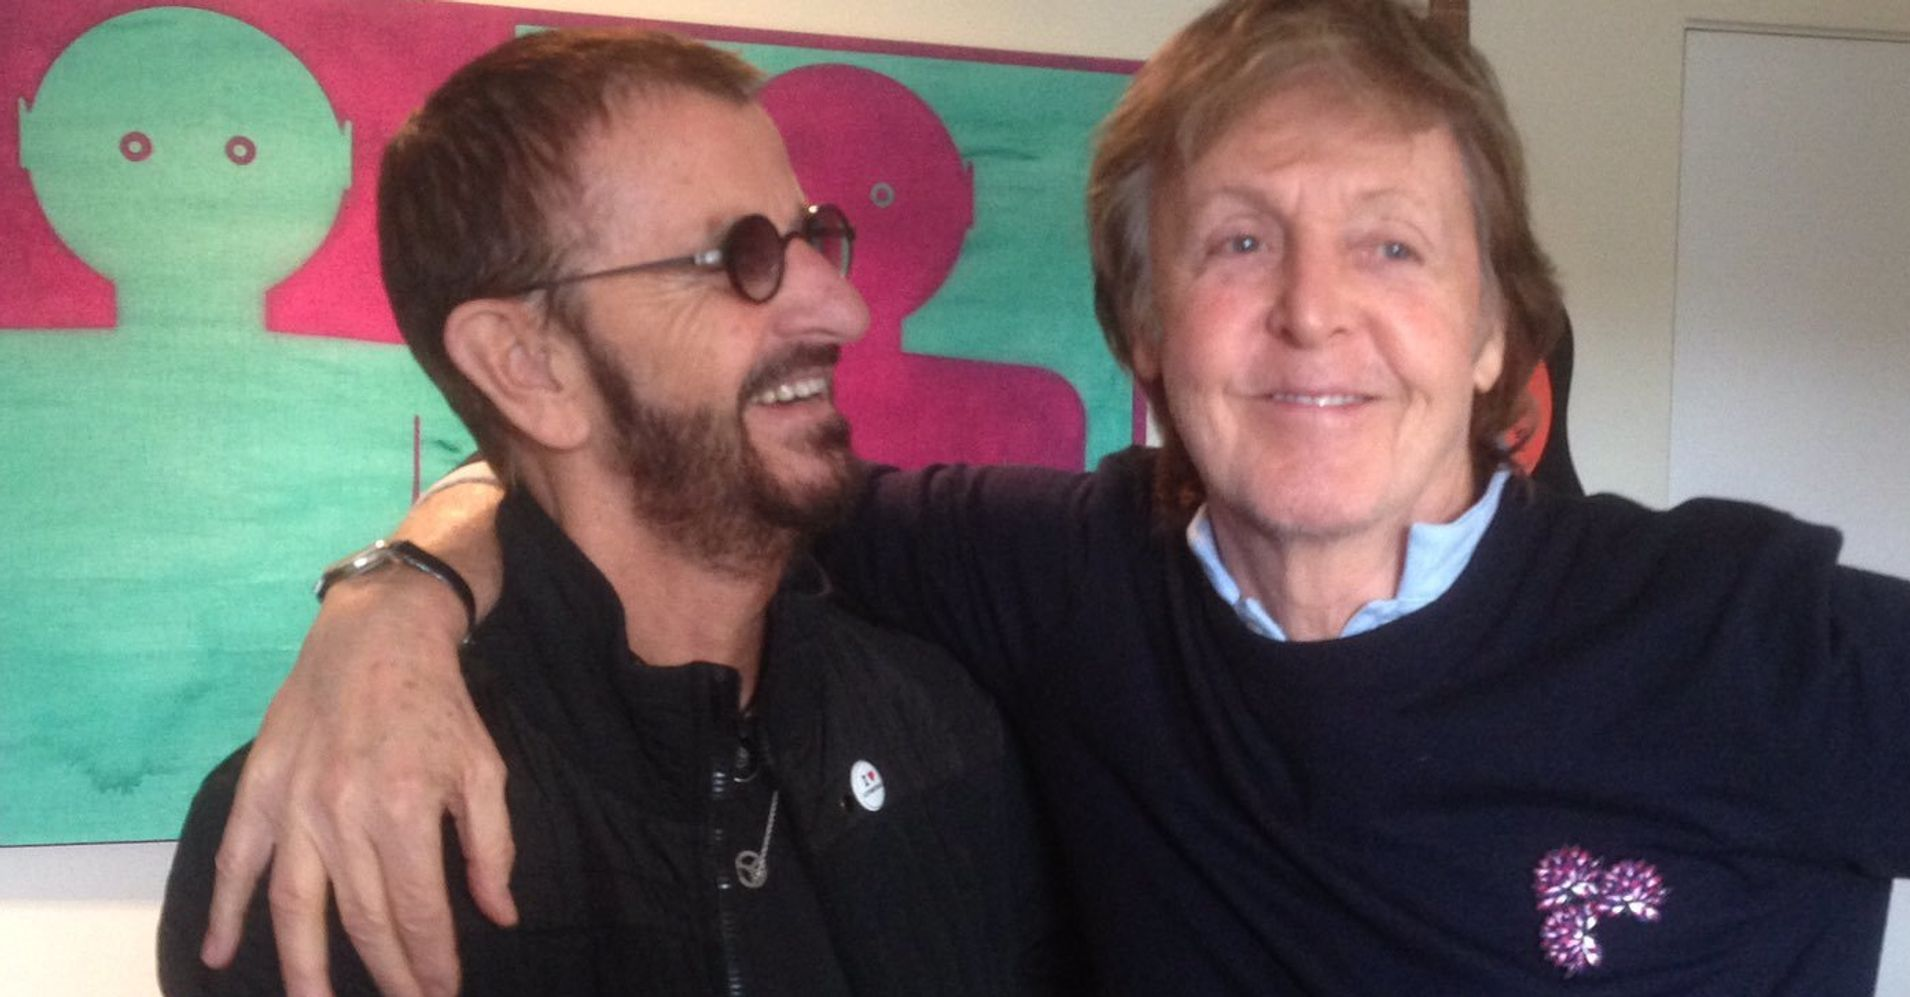 Surviving Beatles Paul McCartney And Ringo Starr Reunite For Recording Session